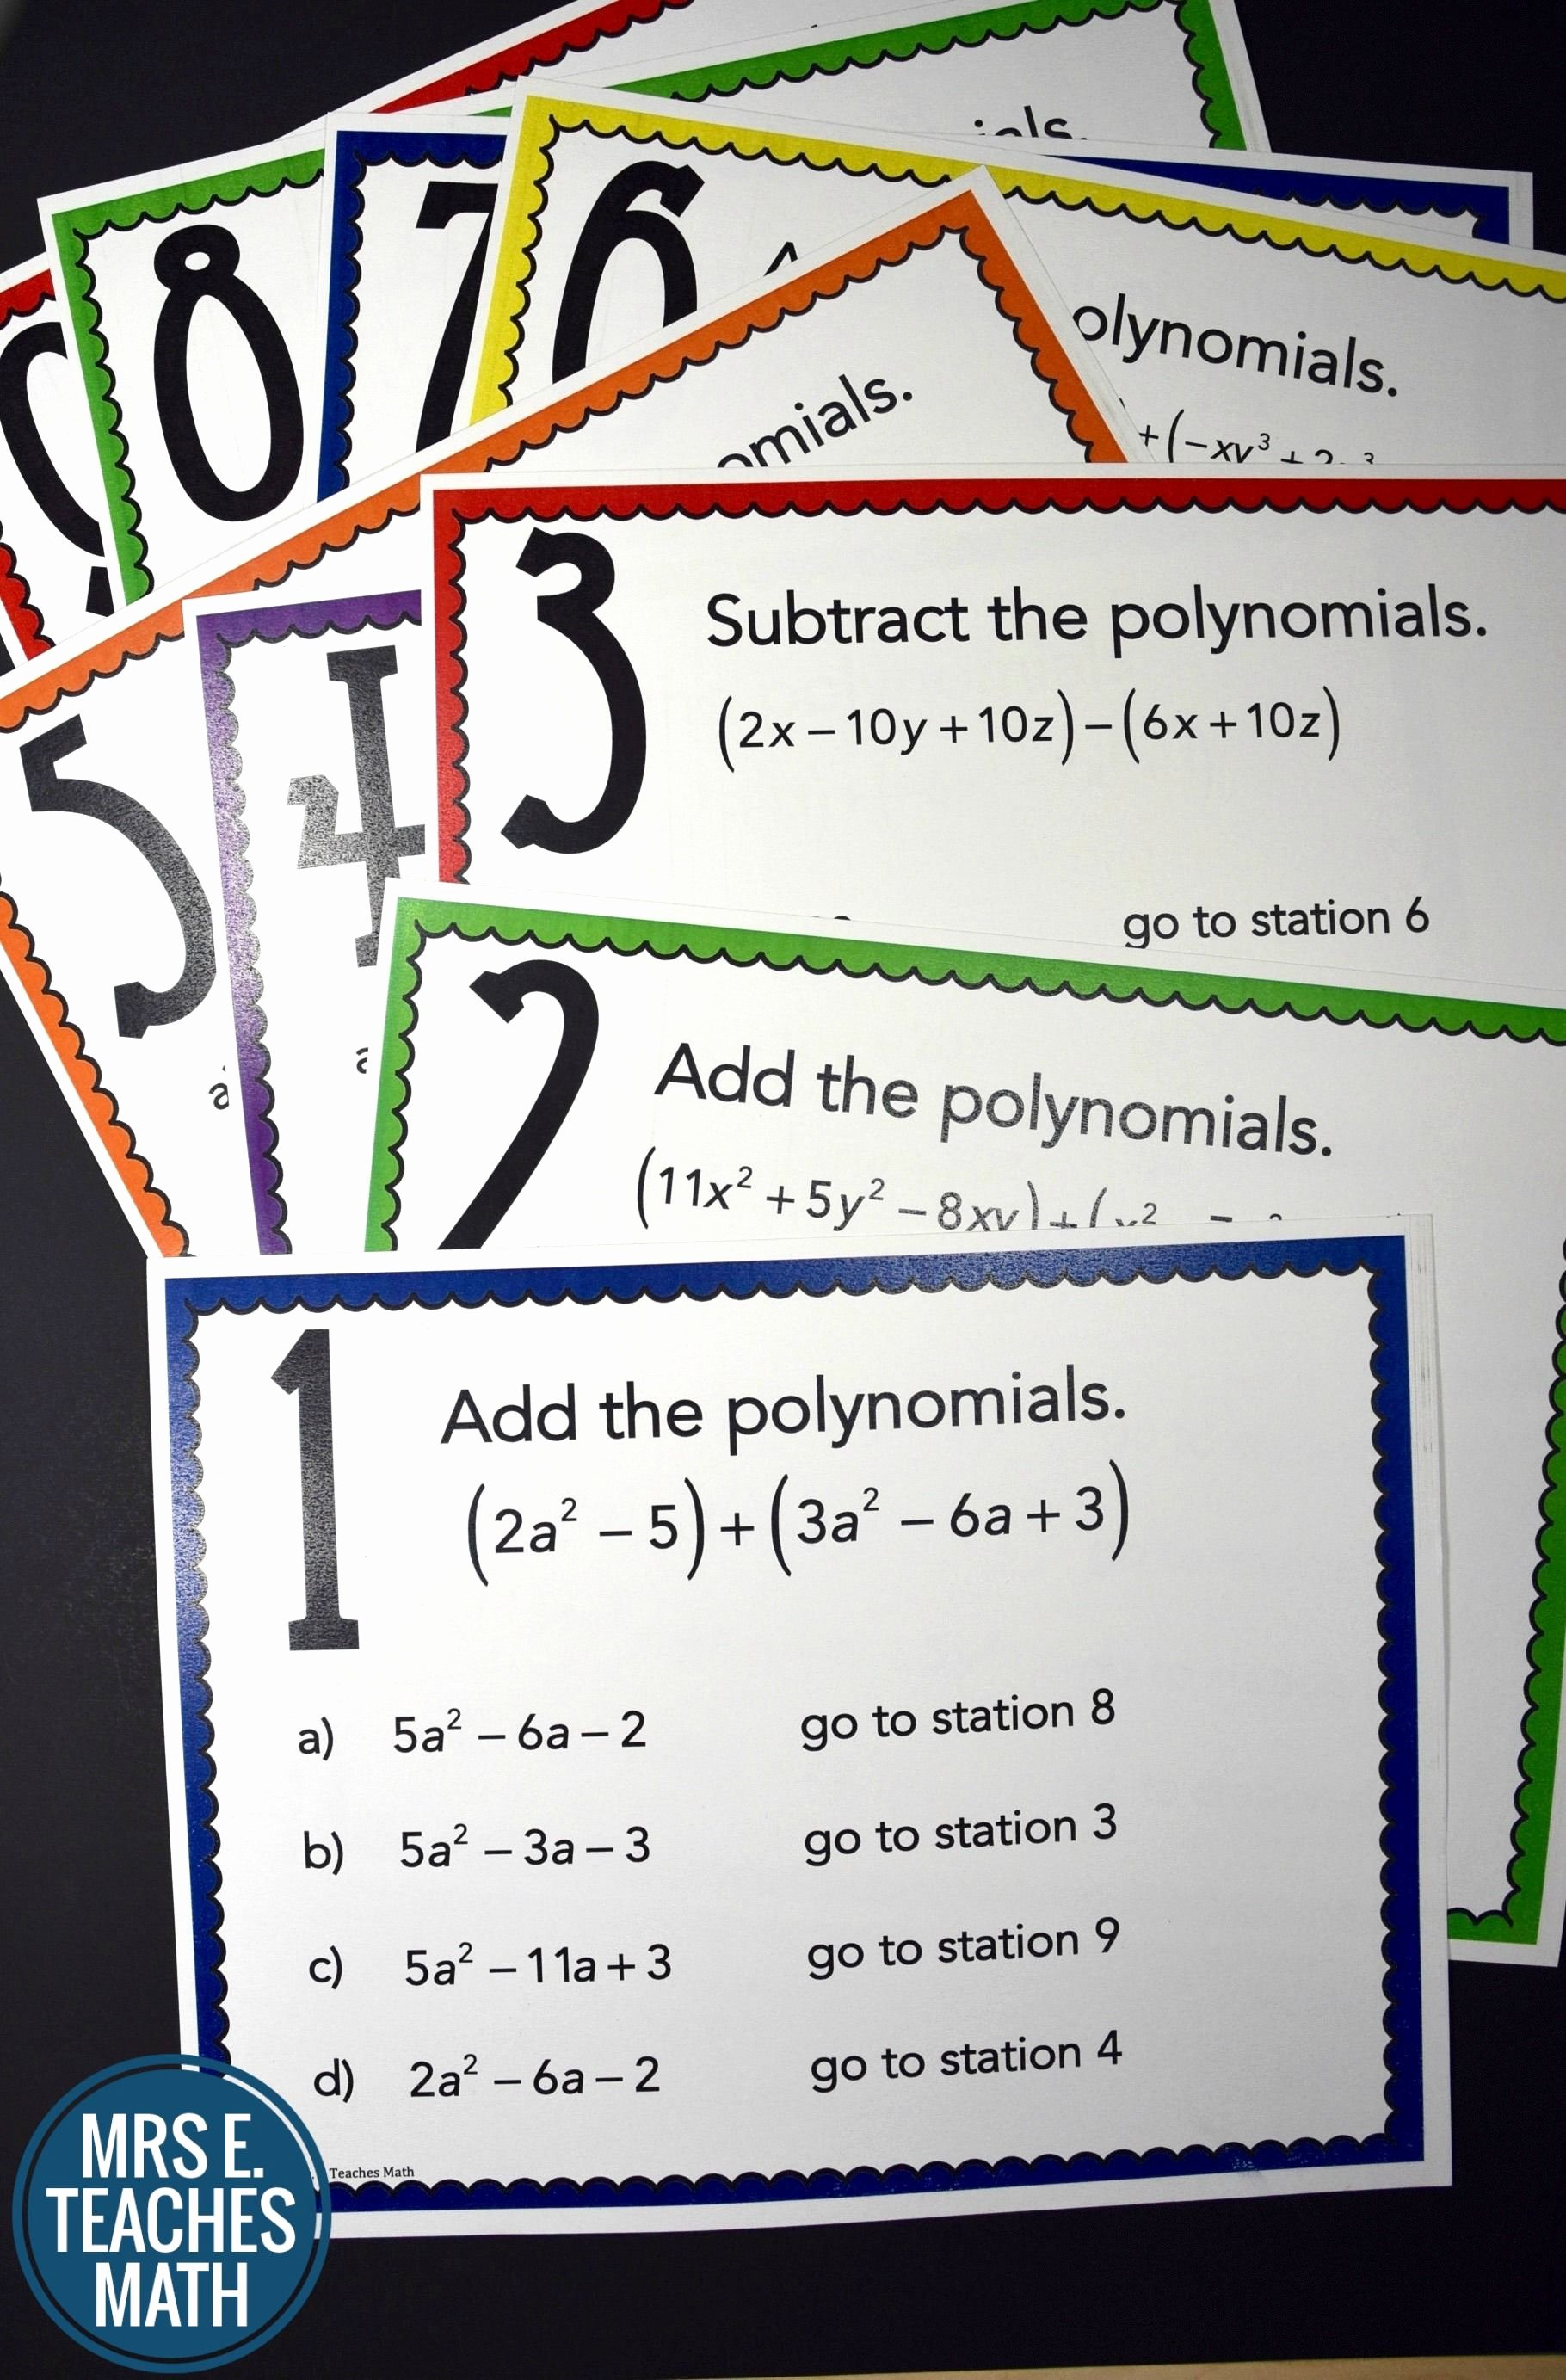 Polynomial Word Problems Worksheet Unique Add and Subtract Polynomials Stations Maze Activity